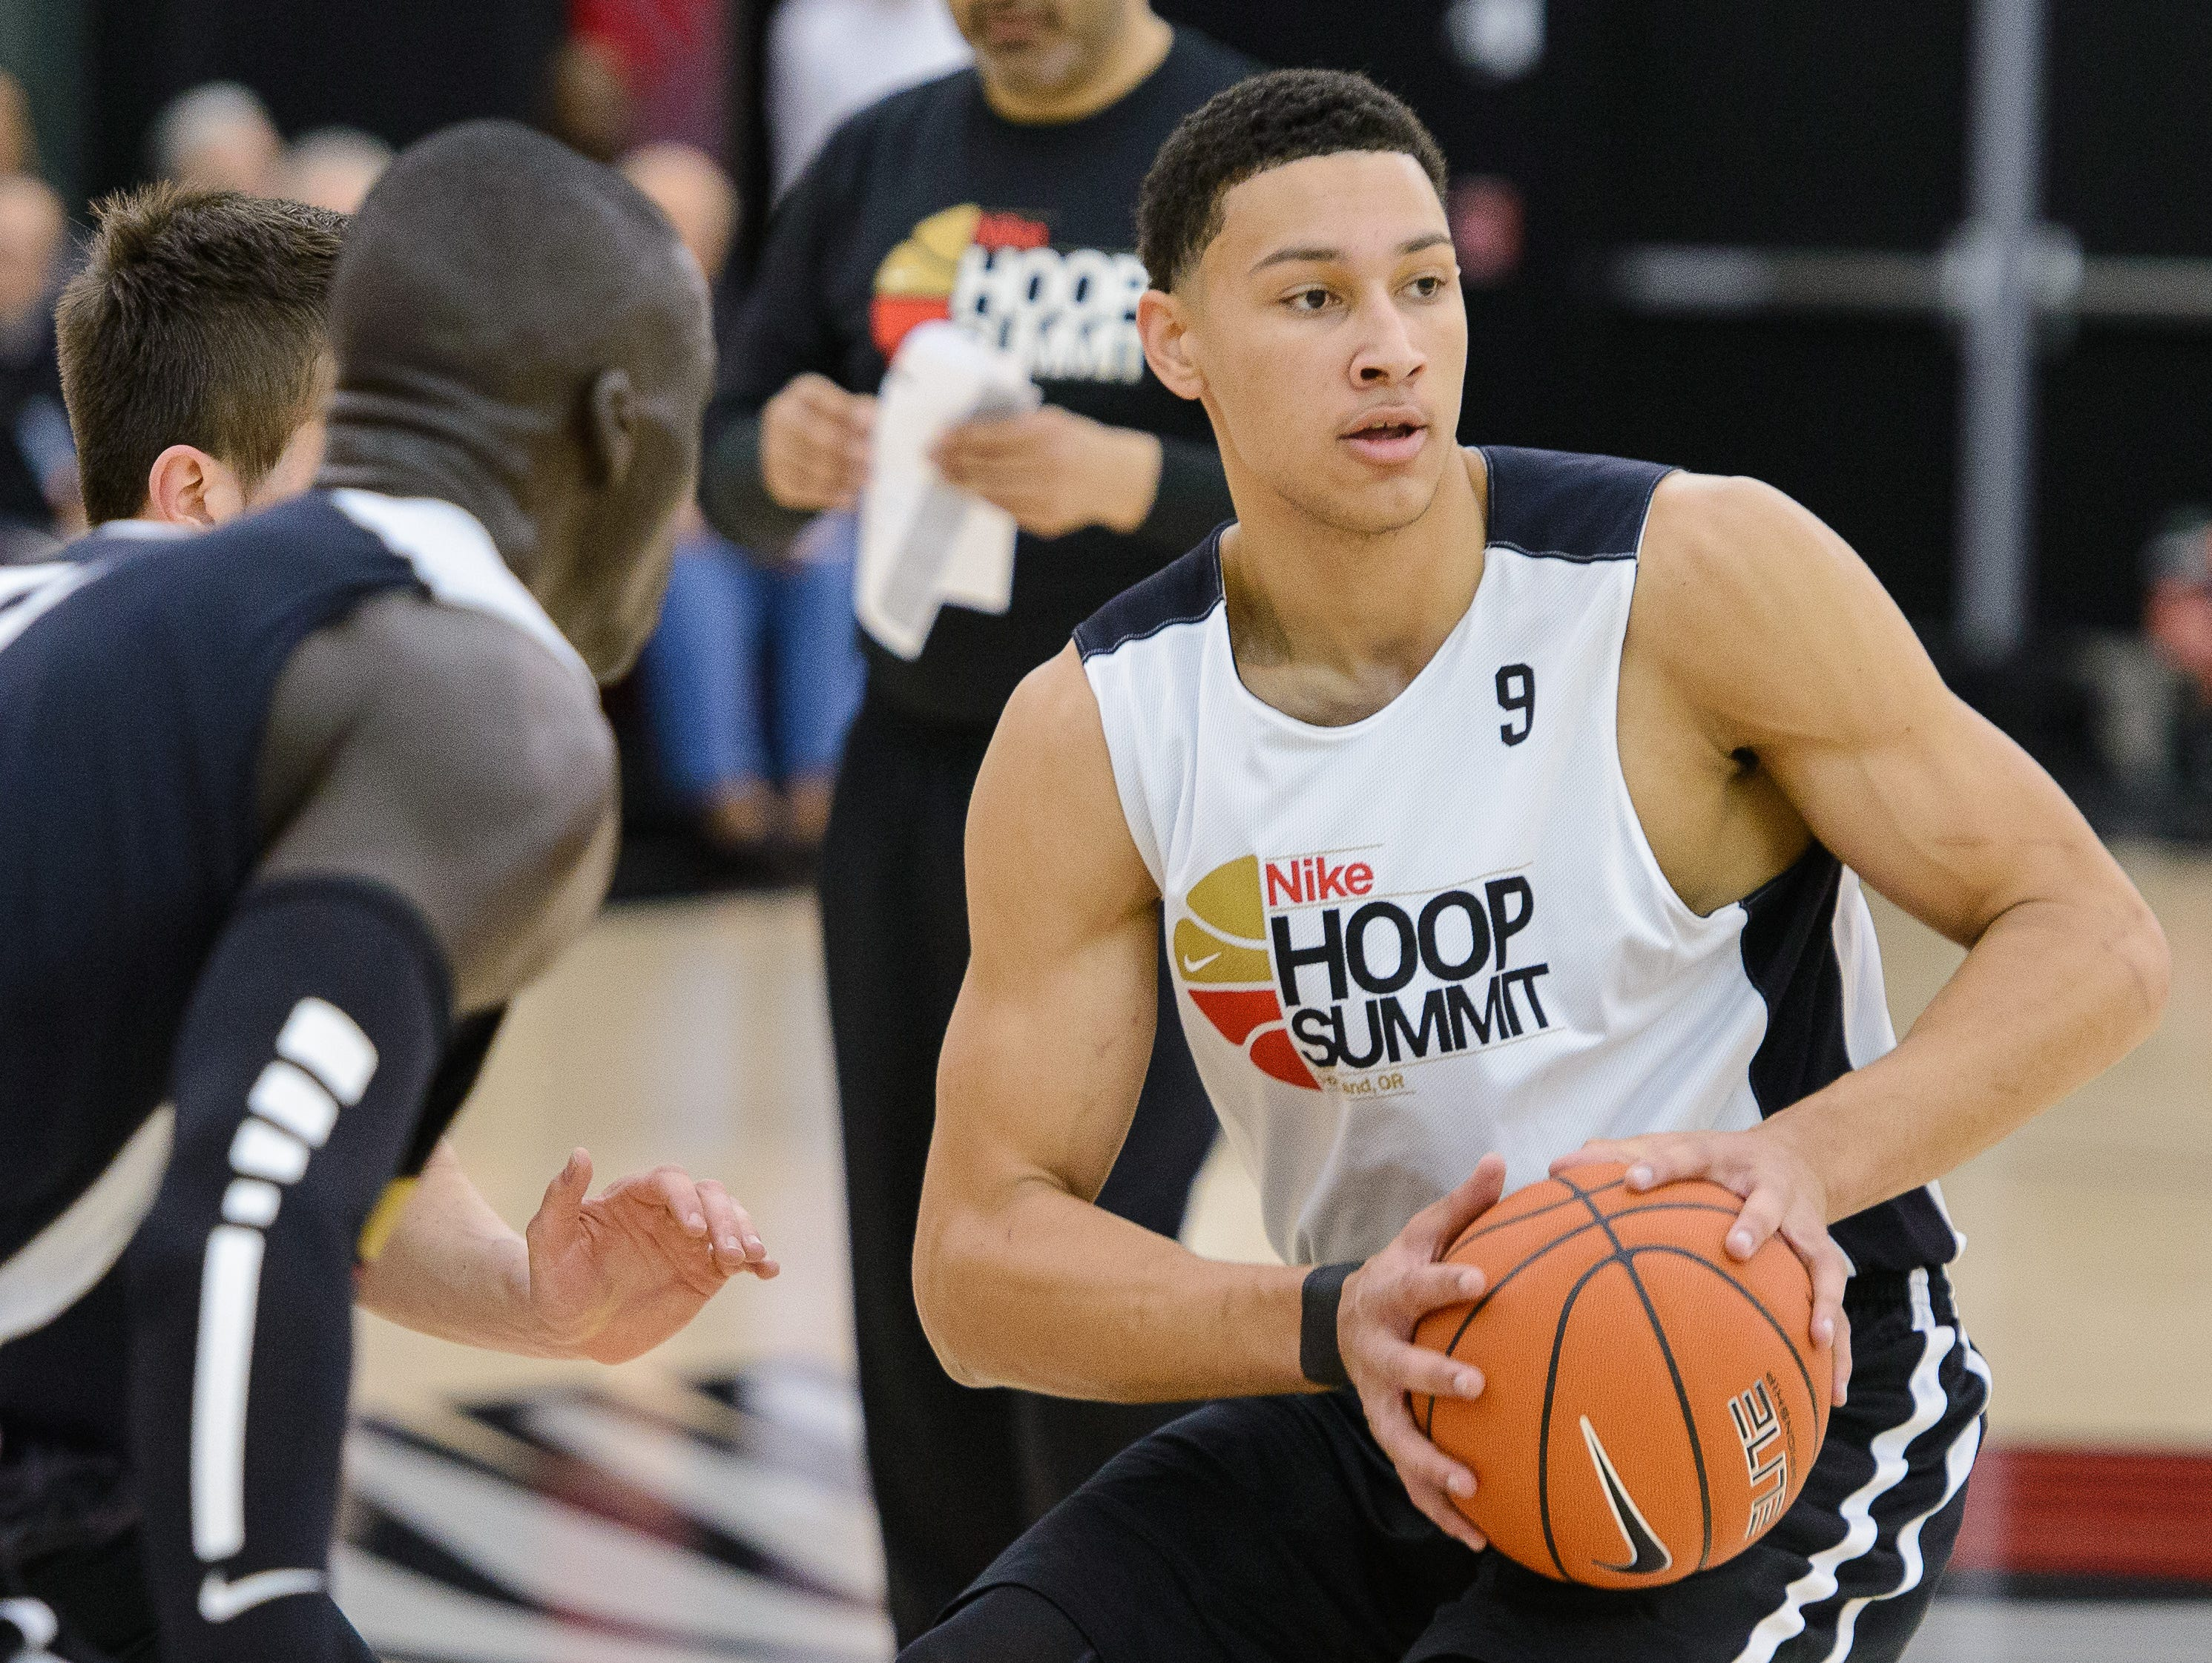 Ben Simmons looks to pass in a World Team practice.